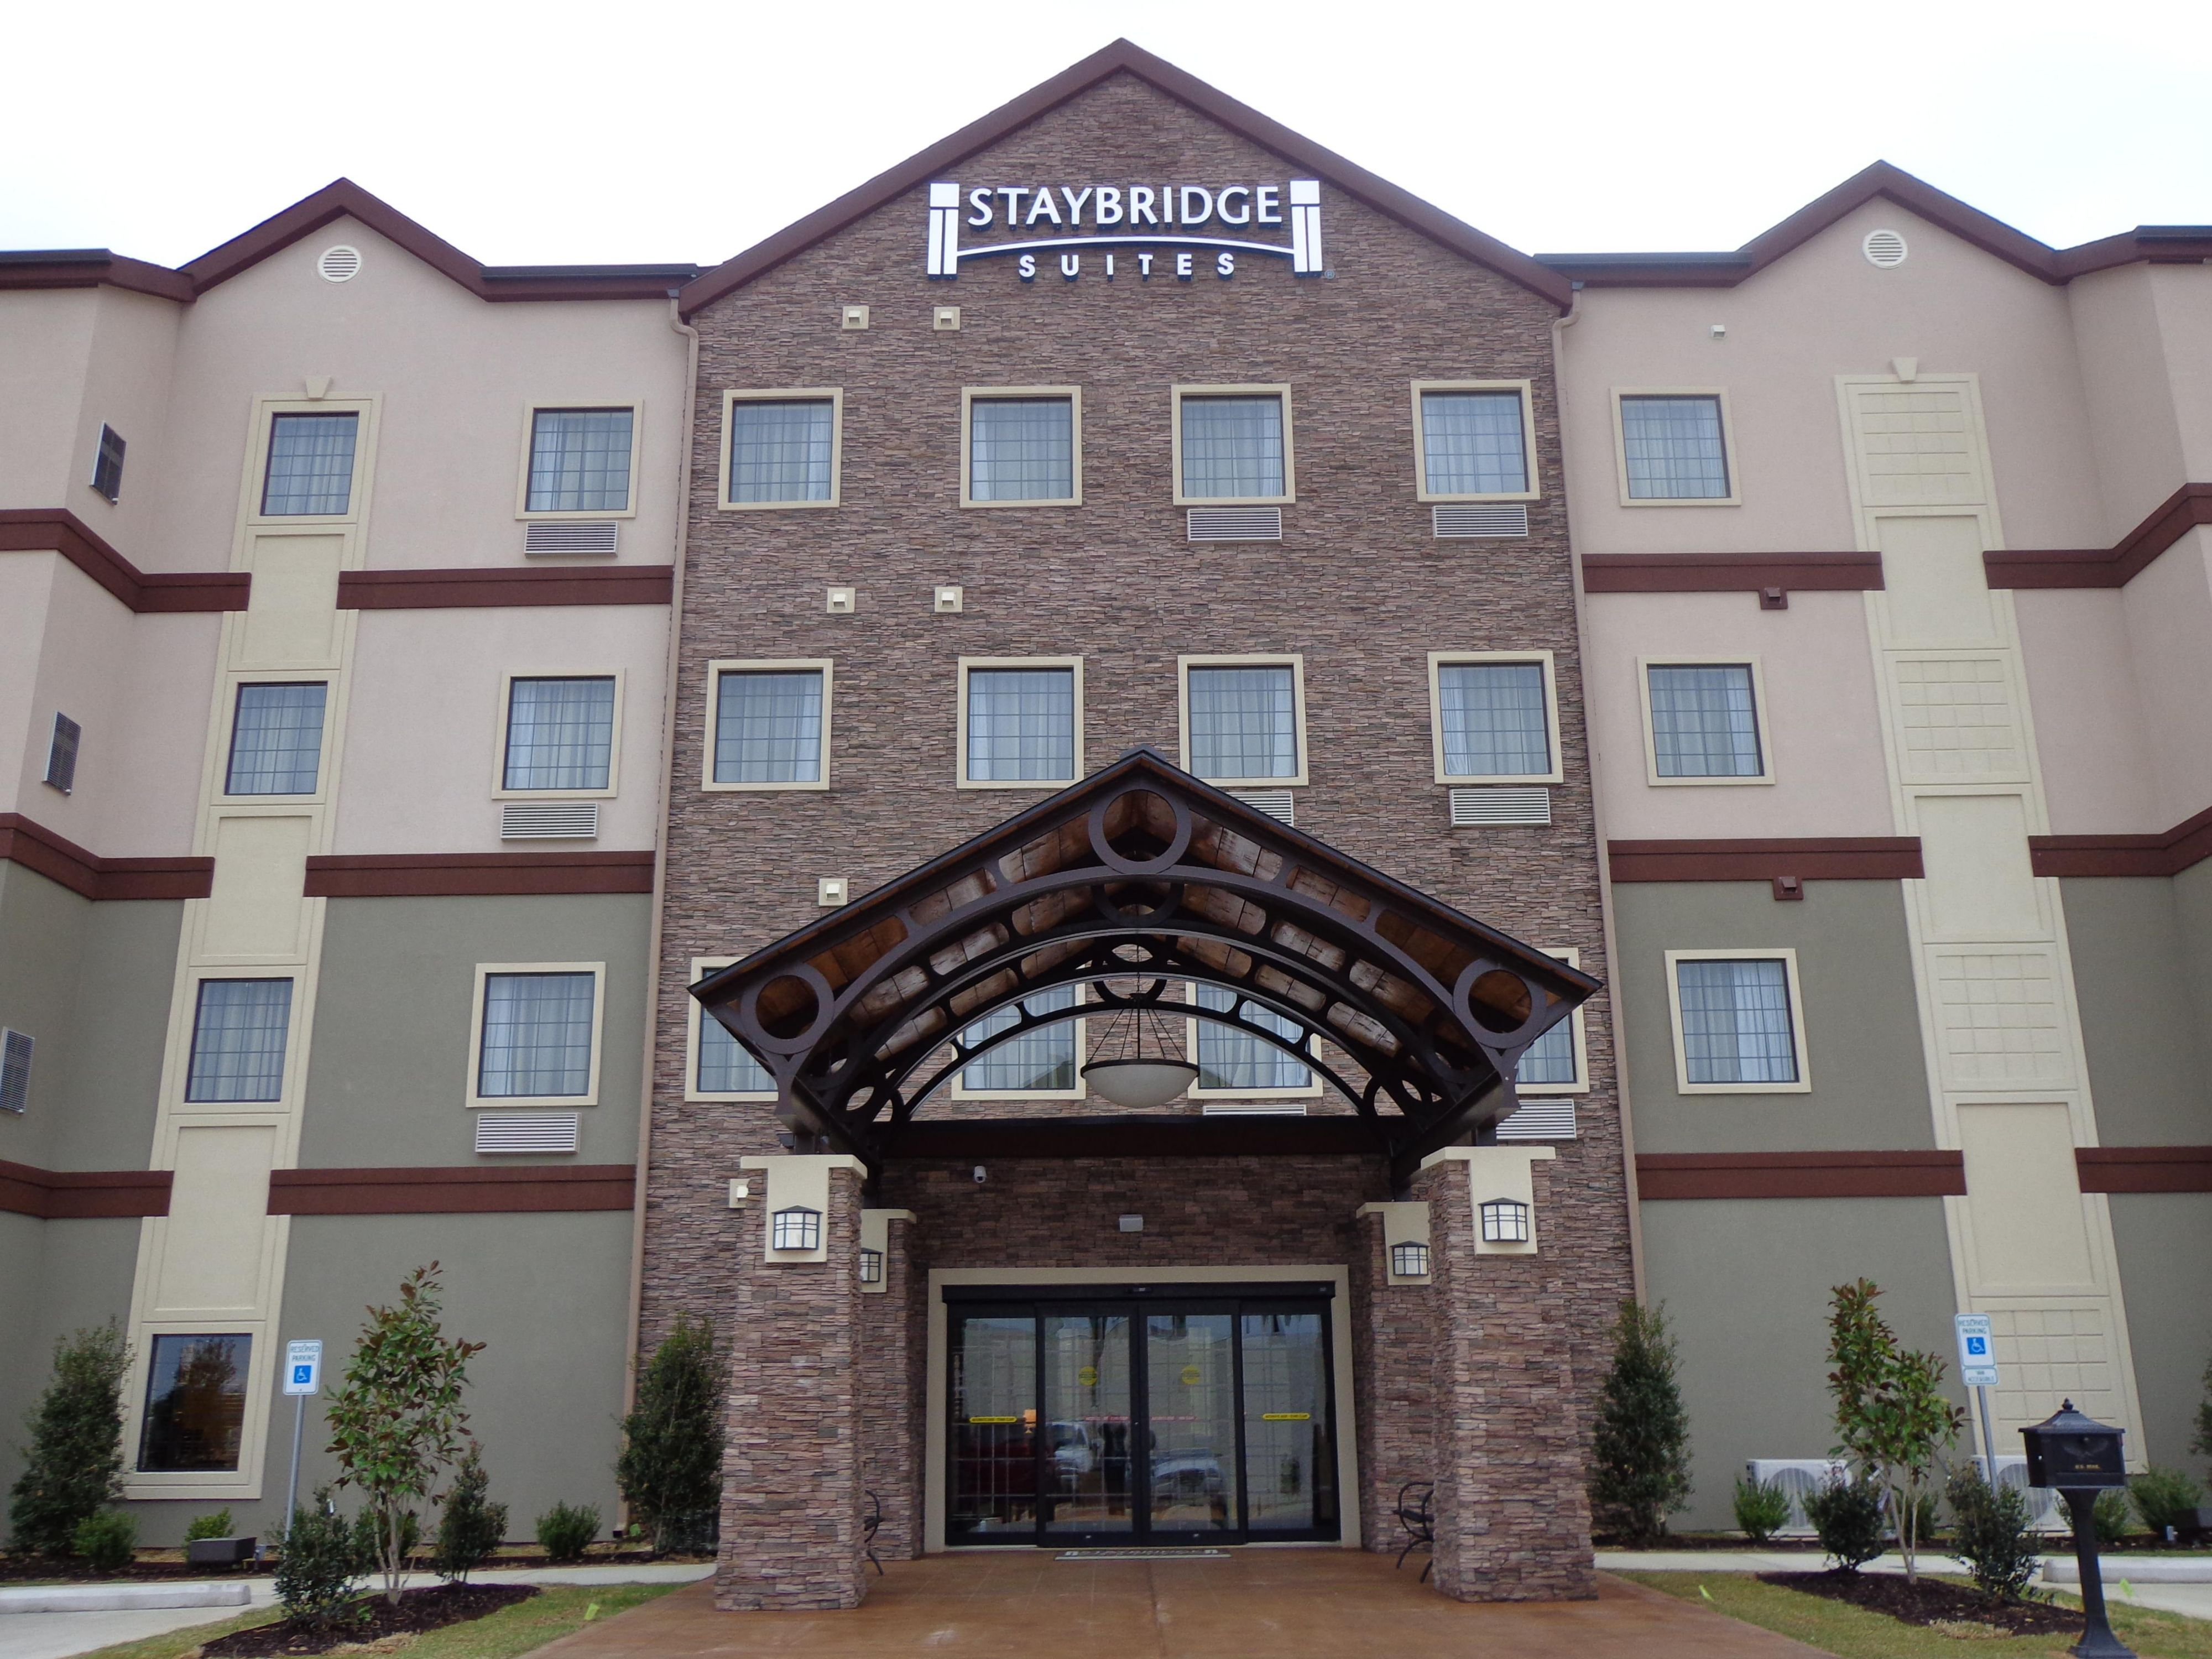 Longview Hotels Staybridge Suites Extended Stay Hotel In Texas